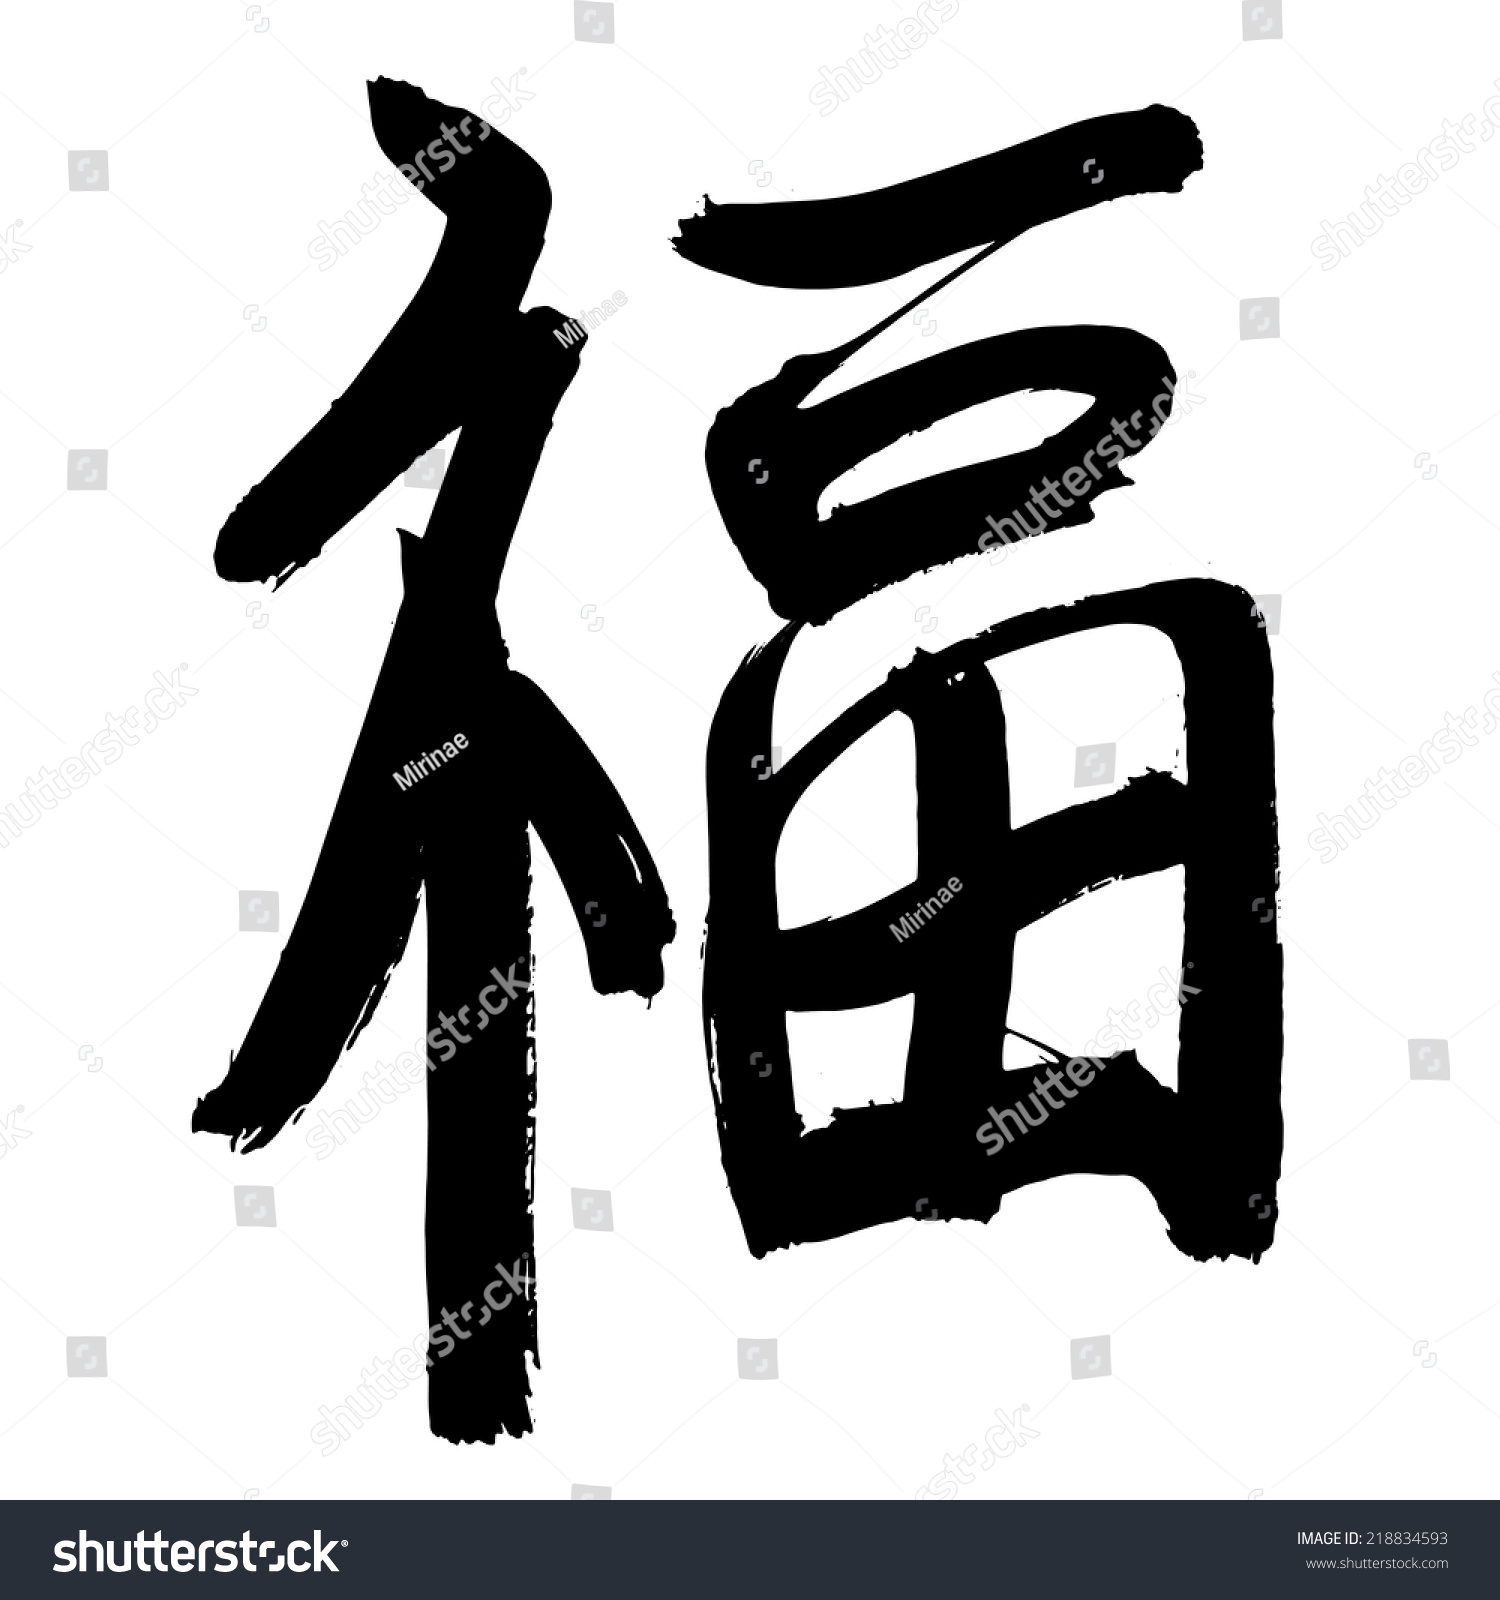 black chinese hand drawn letter calligraphy hieroglyph isolated on white translation of hieroglyph